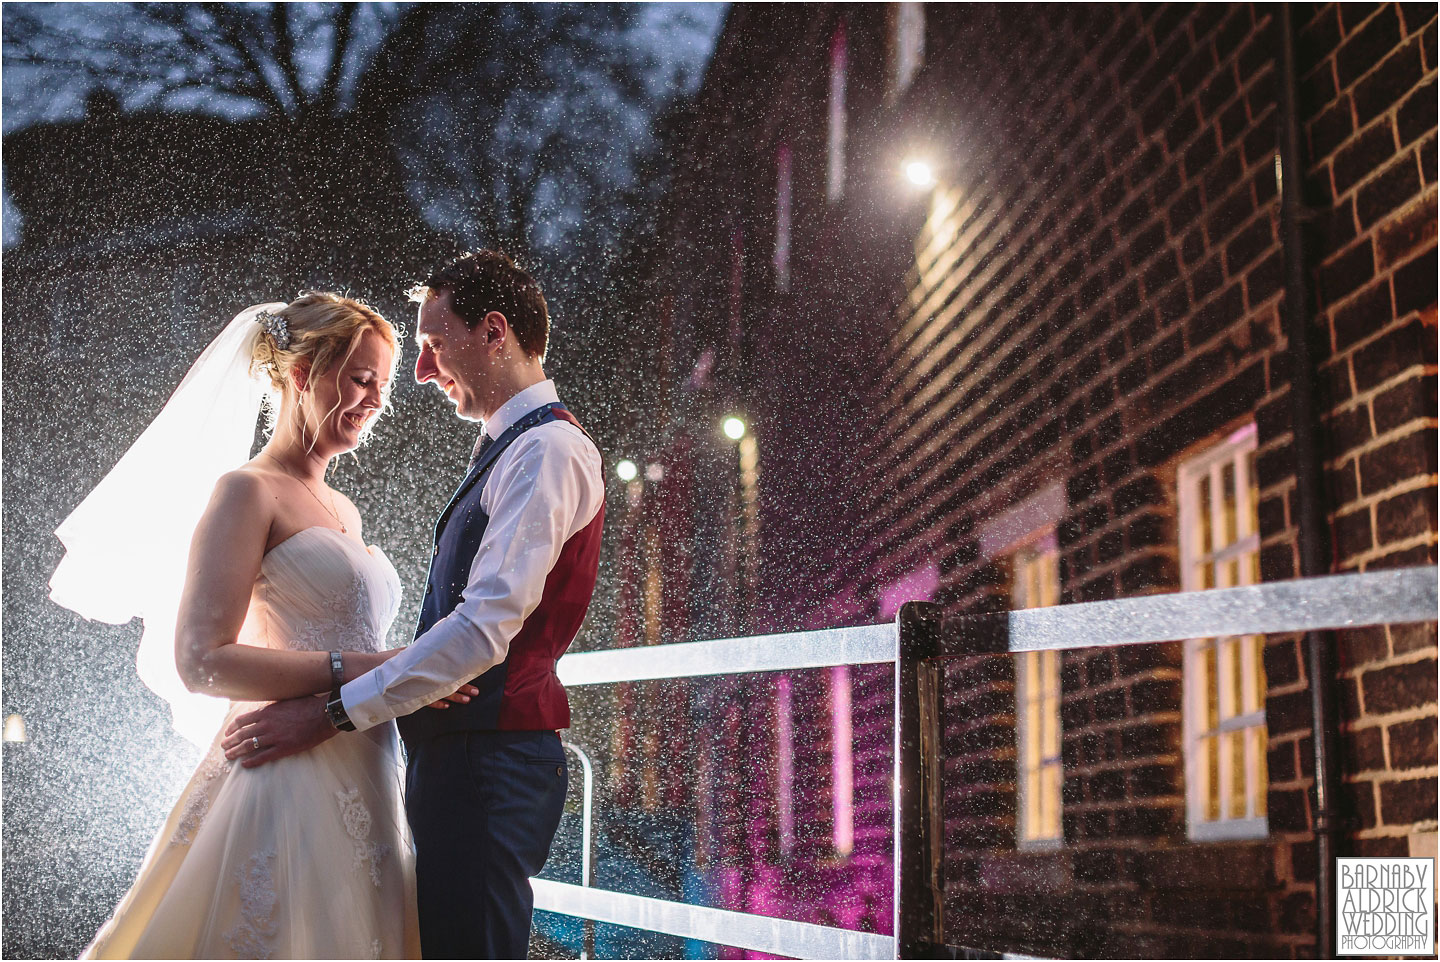 Drizzly evening portraits at a Standedge Tunnel wedding in Marsden